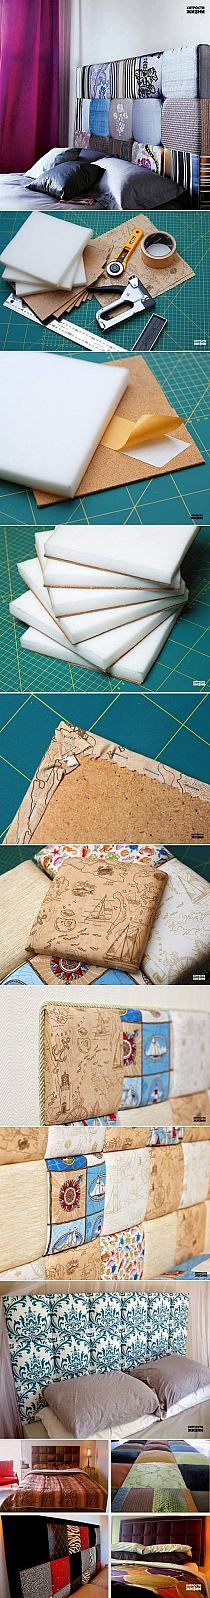 DIY Cardboard Decorated Fireplace DIY Projects | Useful…